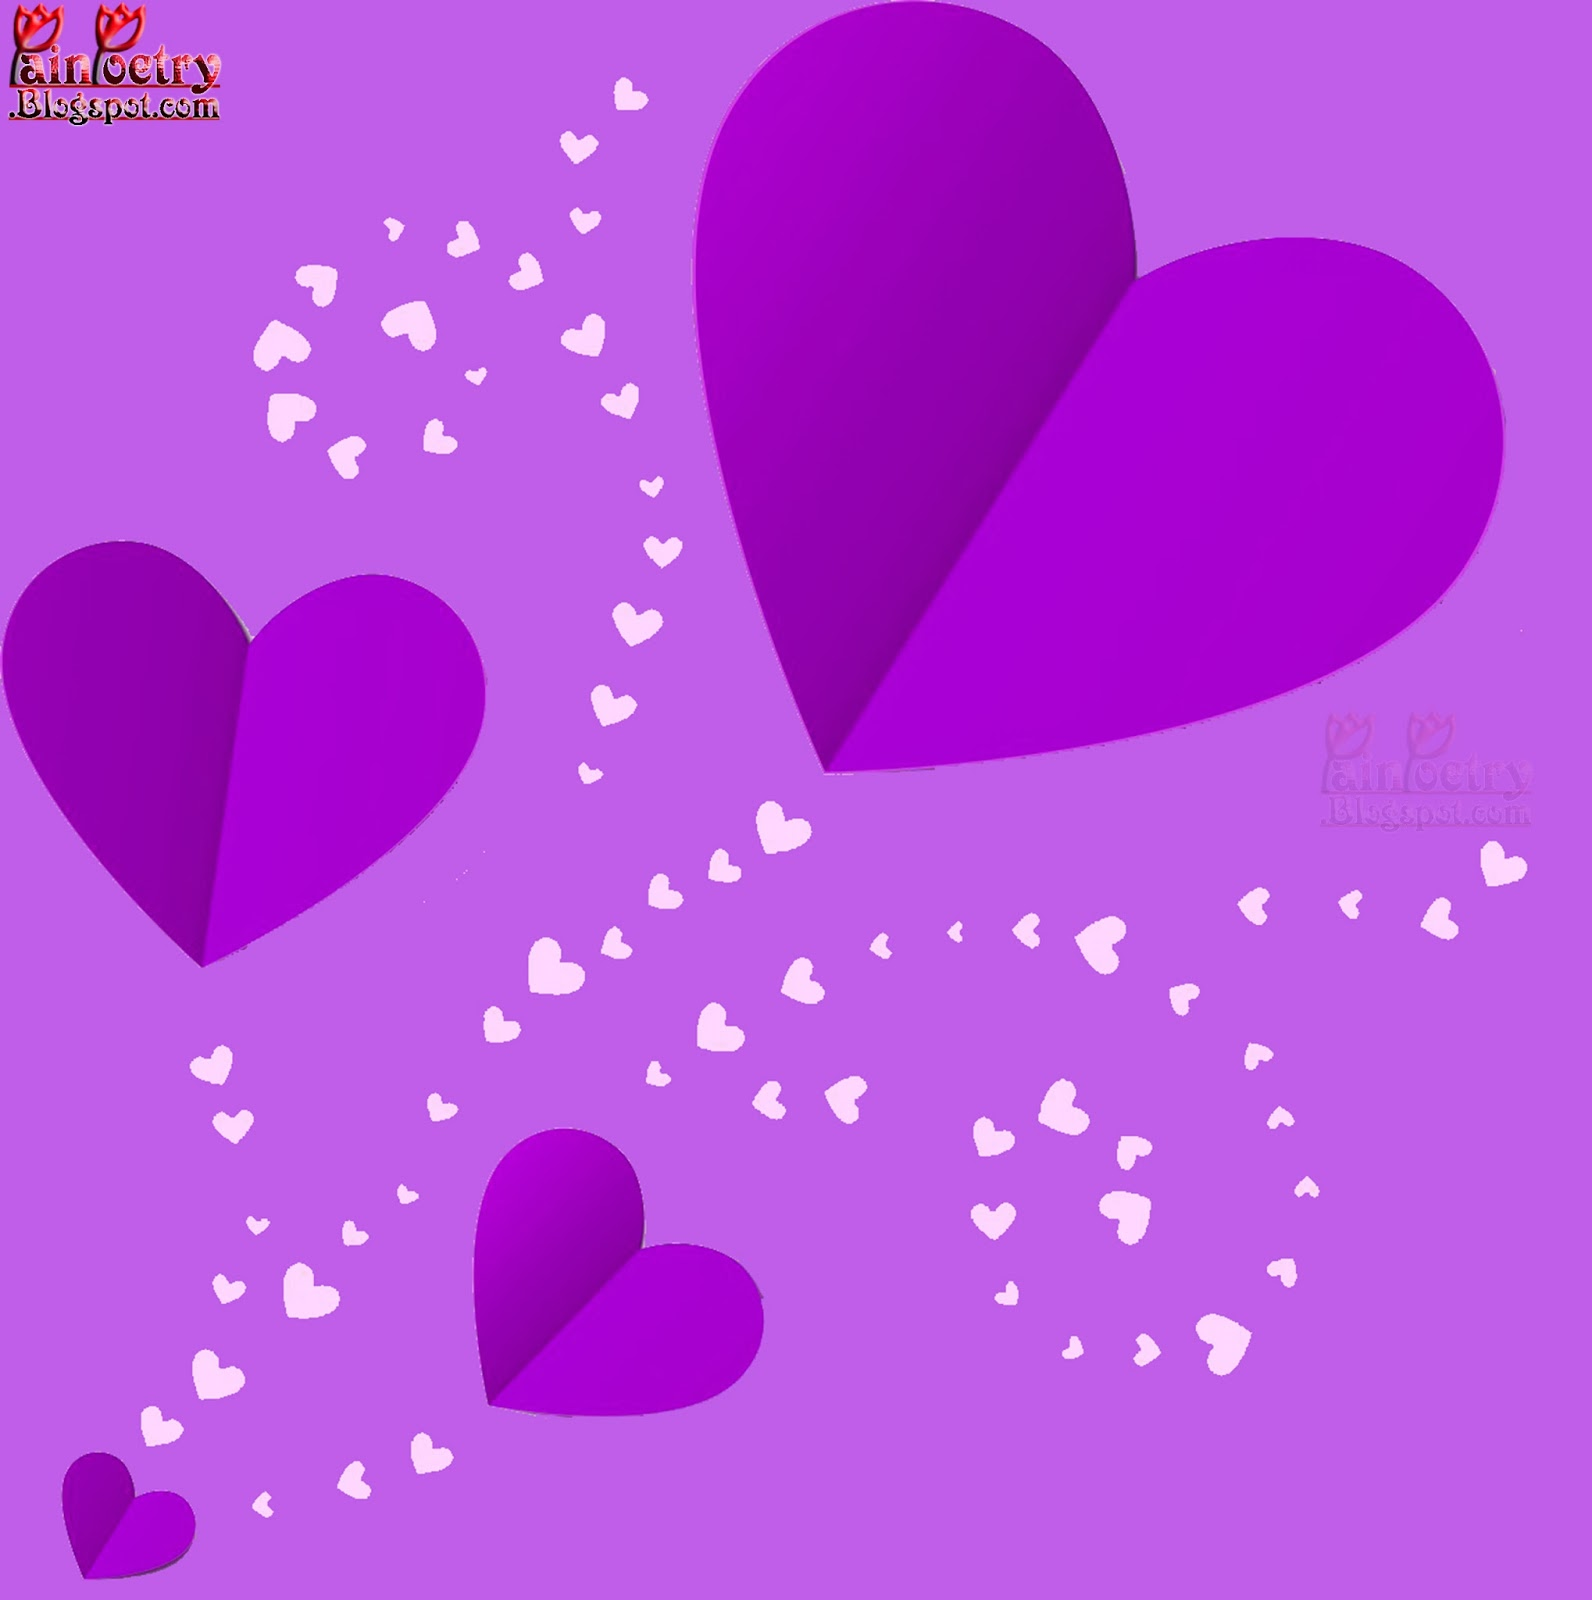 Happy Valentines-Day-Heart-Wallpaper-Wishes-Image-HD-Wide